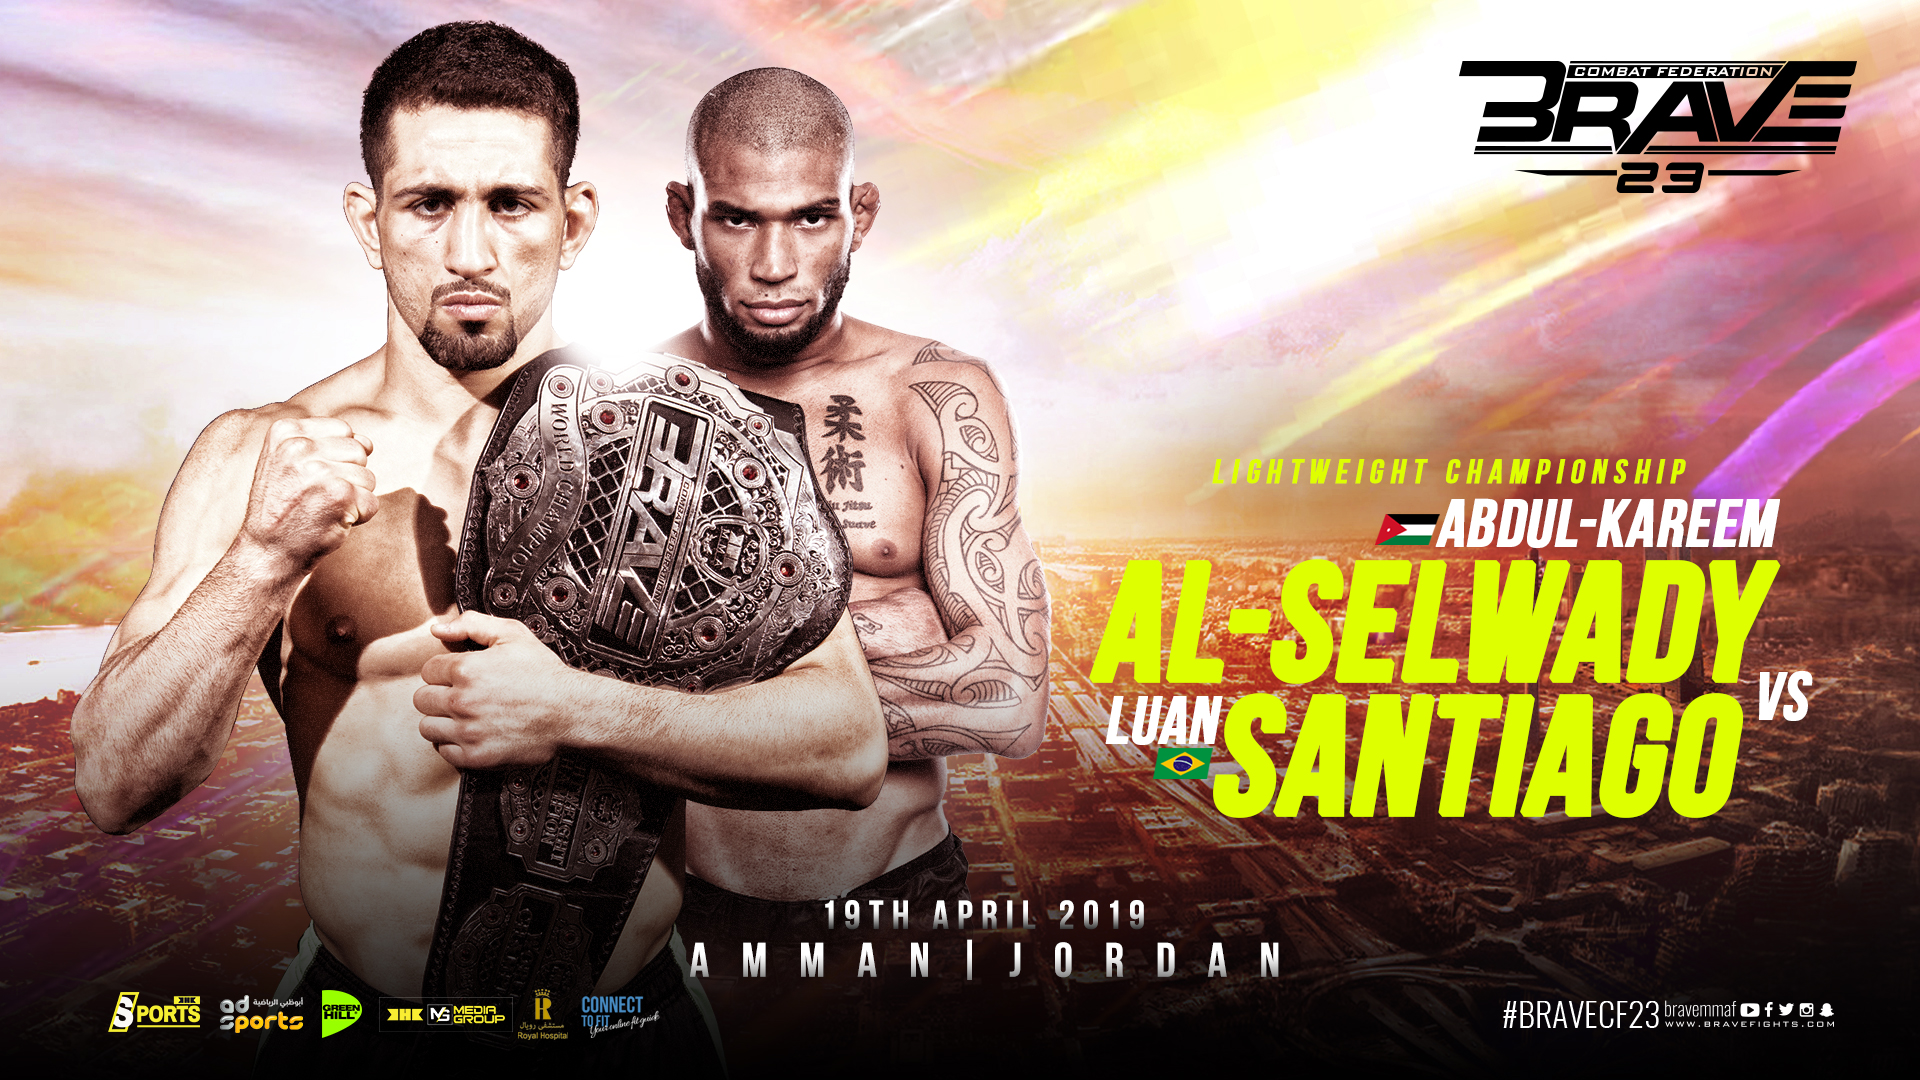 Brave 23: Al-Selwady to defend title at home against Luan Santiago -